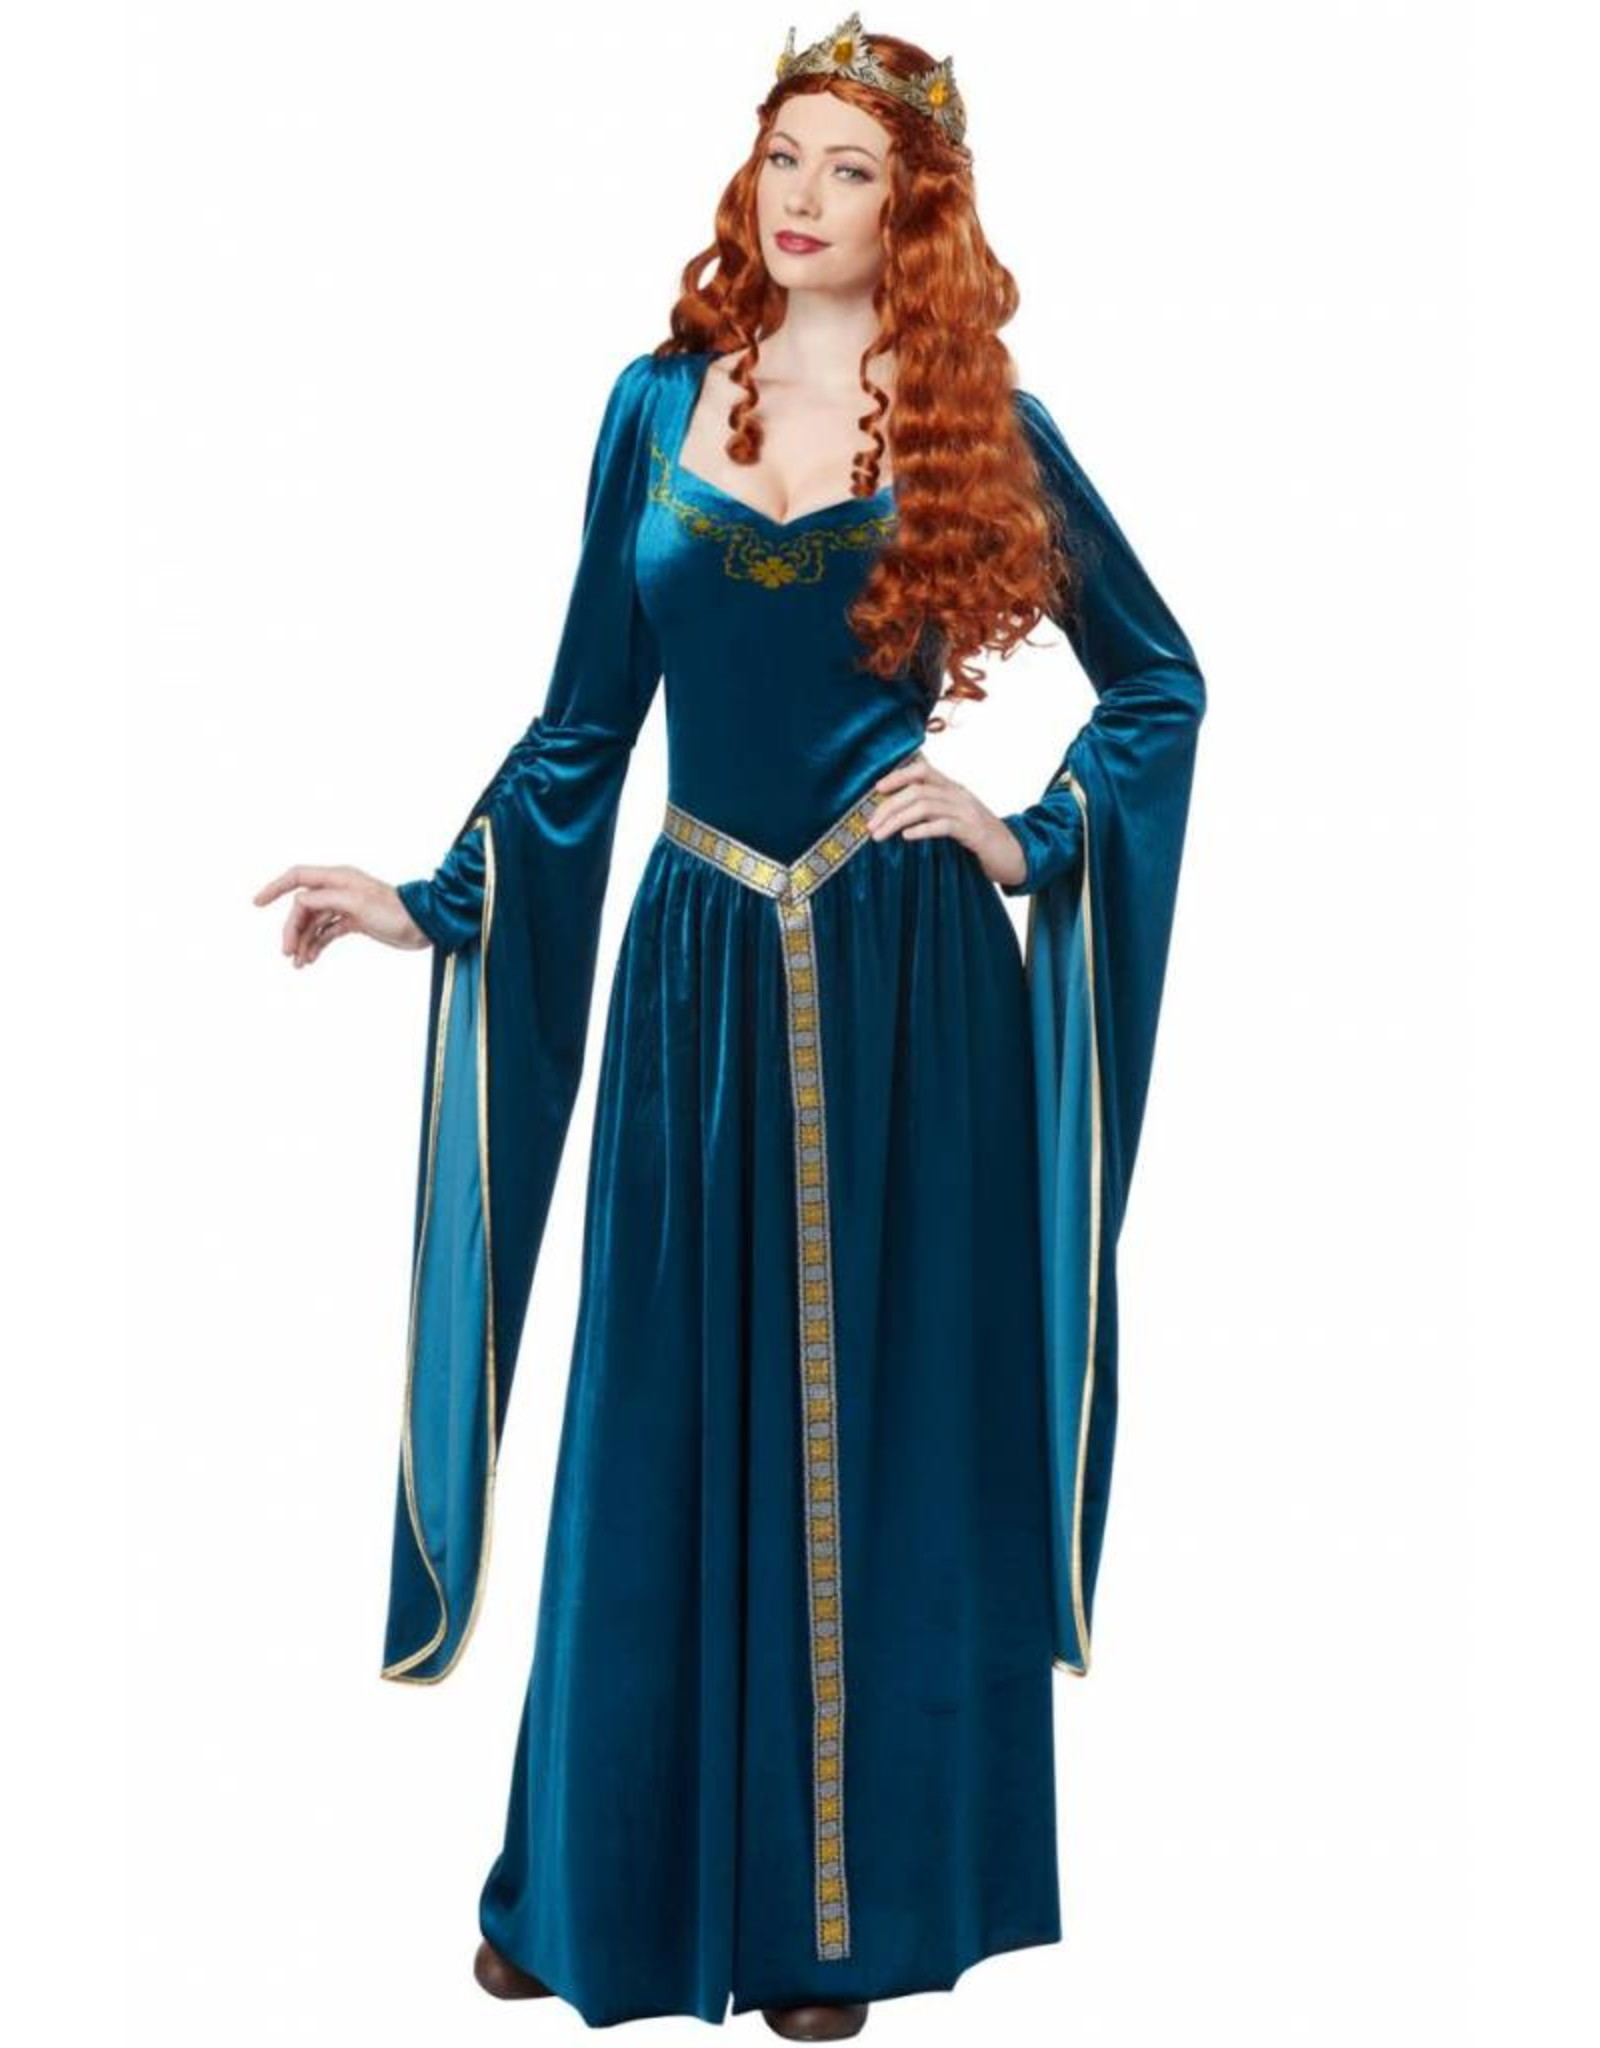 California Costume Lady Guinevere Teal